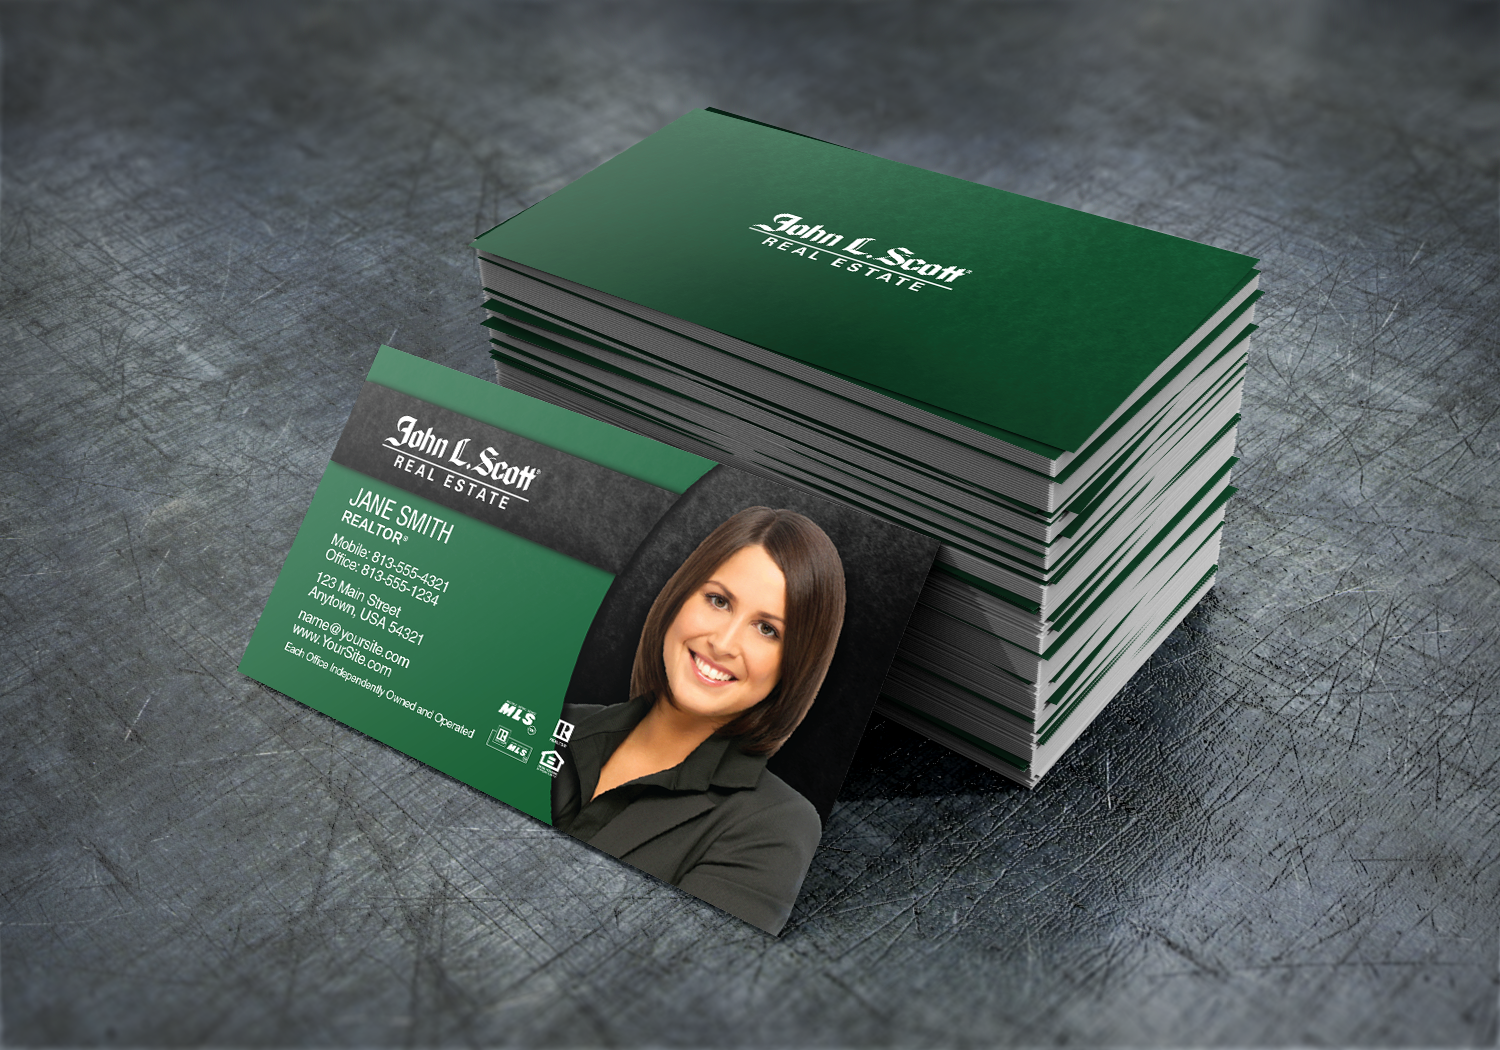 Beautiful New John L Scott Business Cards Are Now Available Realtor Johnlscott Realesta Business Cards Business Cards Online Real Estate Business Cards